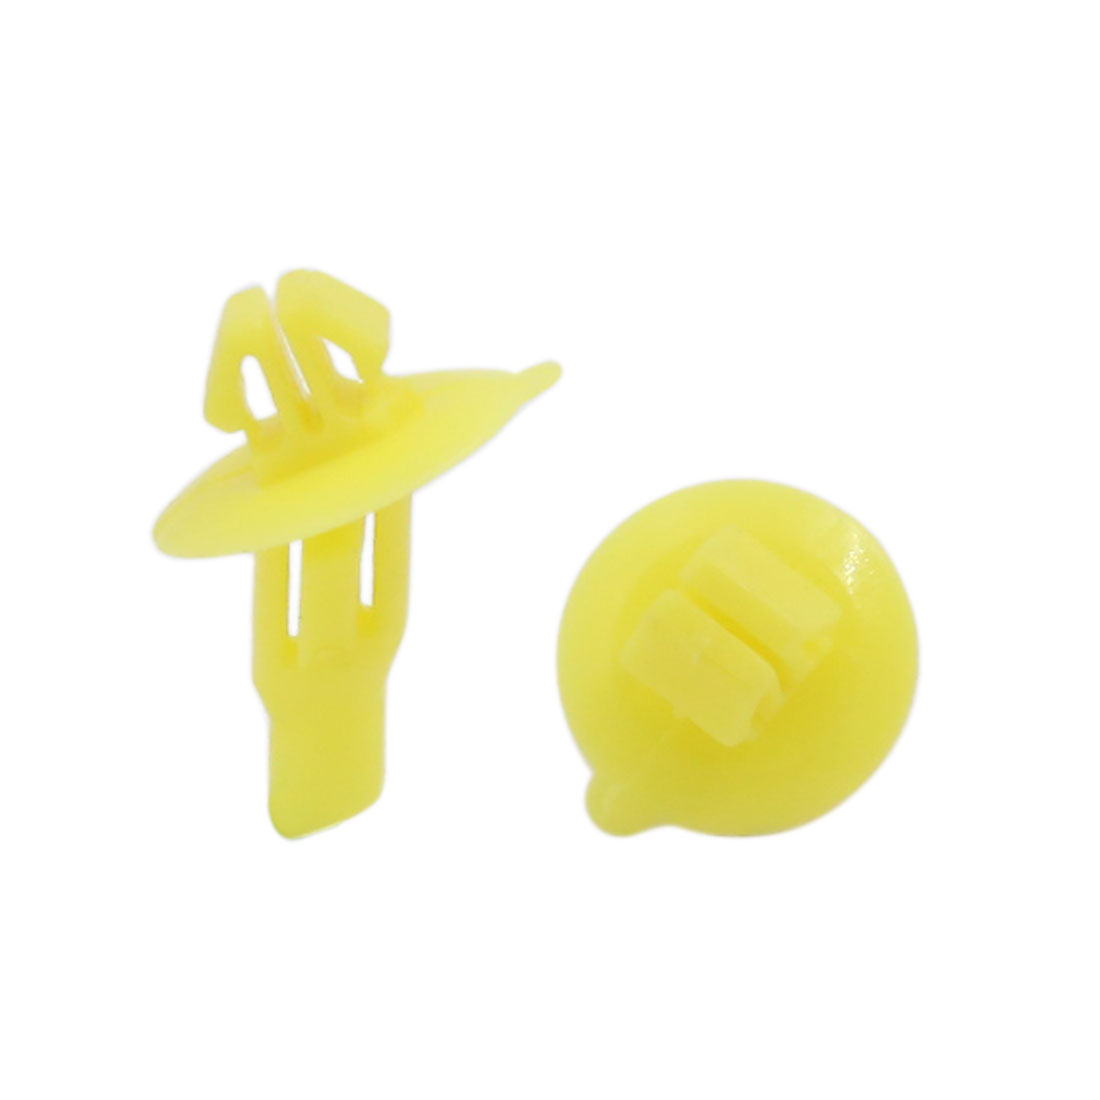 100pcs 7 x 11 mm Hole Size Plastic Rivet Wheel Arch Cover Fastener Yellow for Toyota